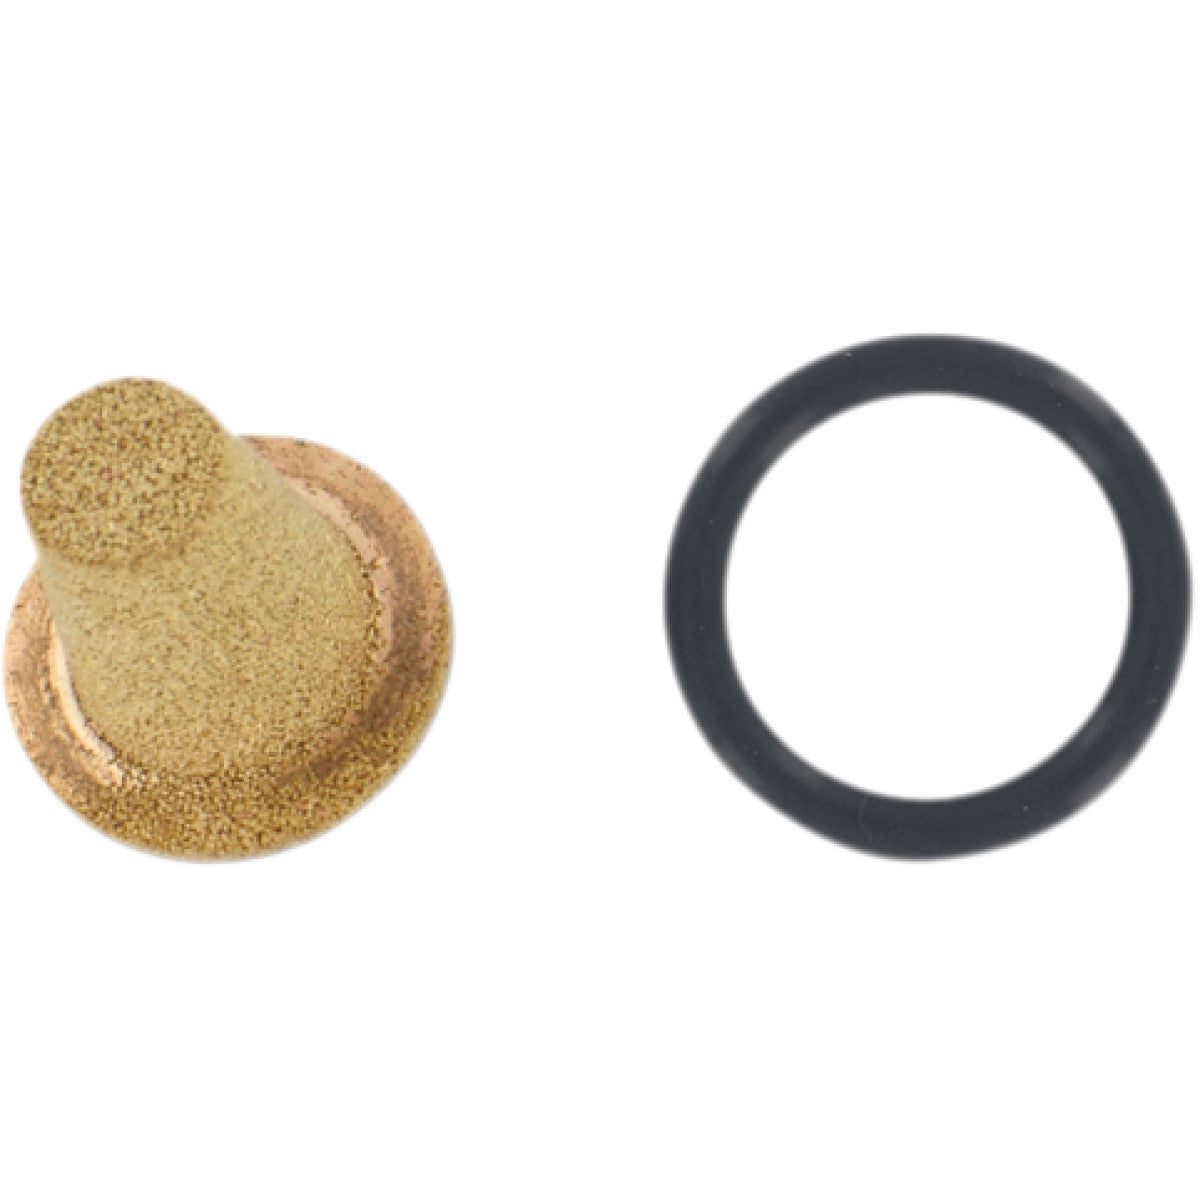 DS-391666 PINGEL Replacement 40 Micron Bronze Filter Element with O-Ring PINGEL BRASS FILTER ELEM.